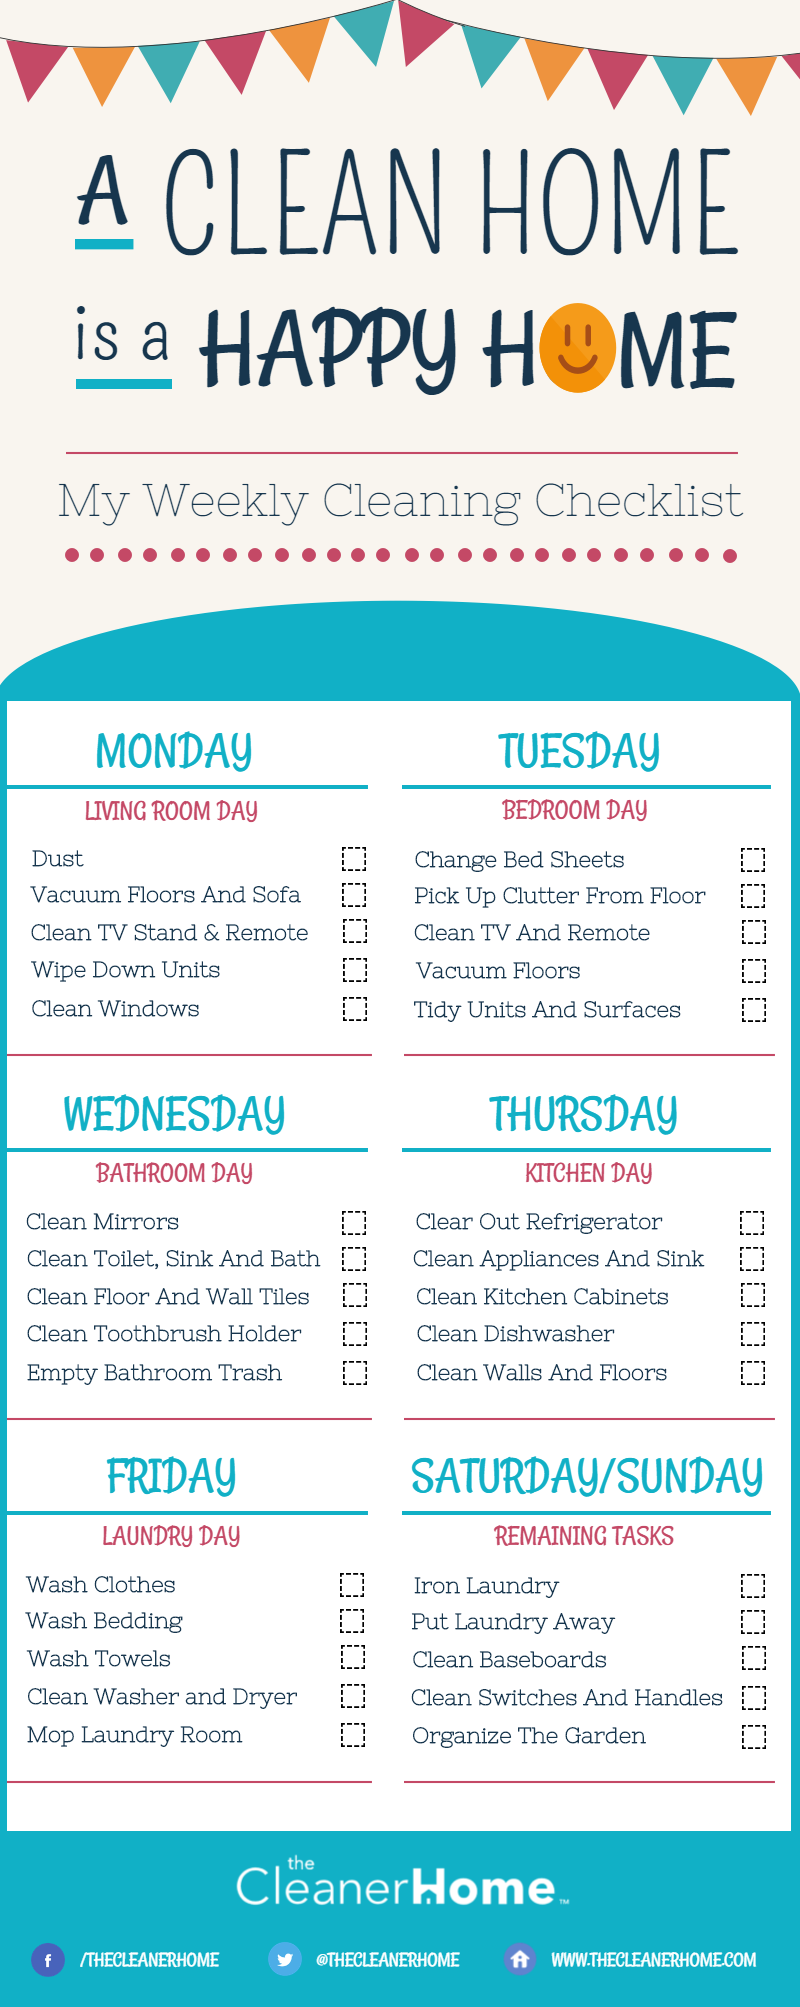 image regarding House Cleaning Checklist Printable identify Weekly Place Cleansing Listing The Cleaner House